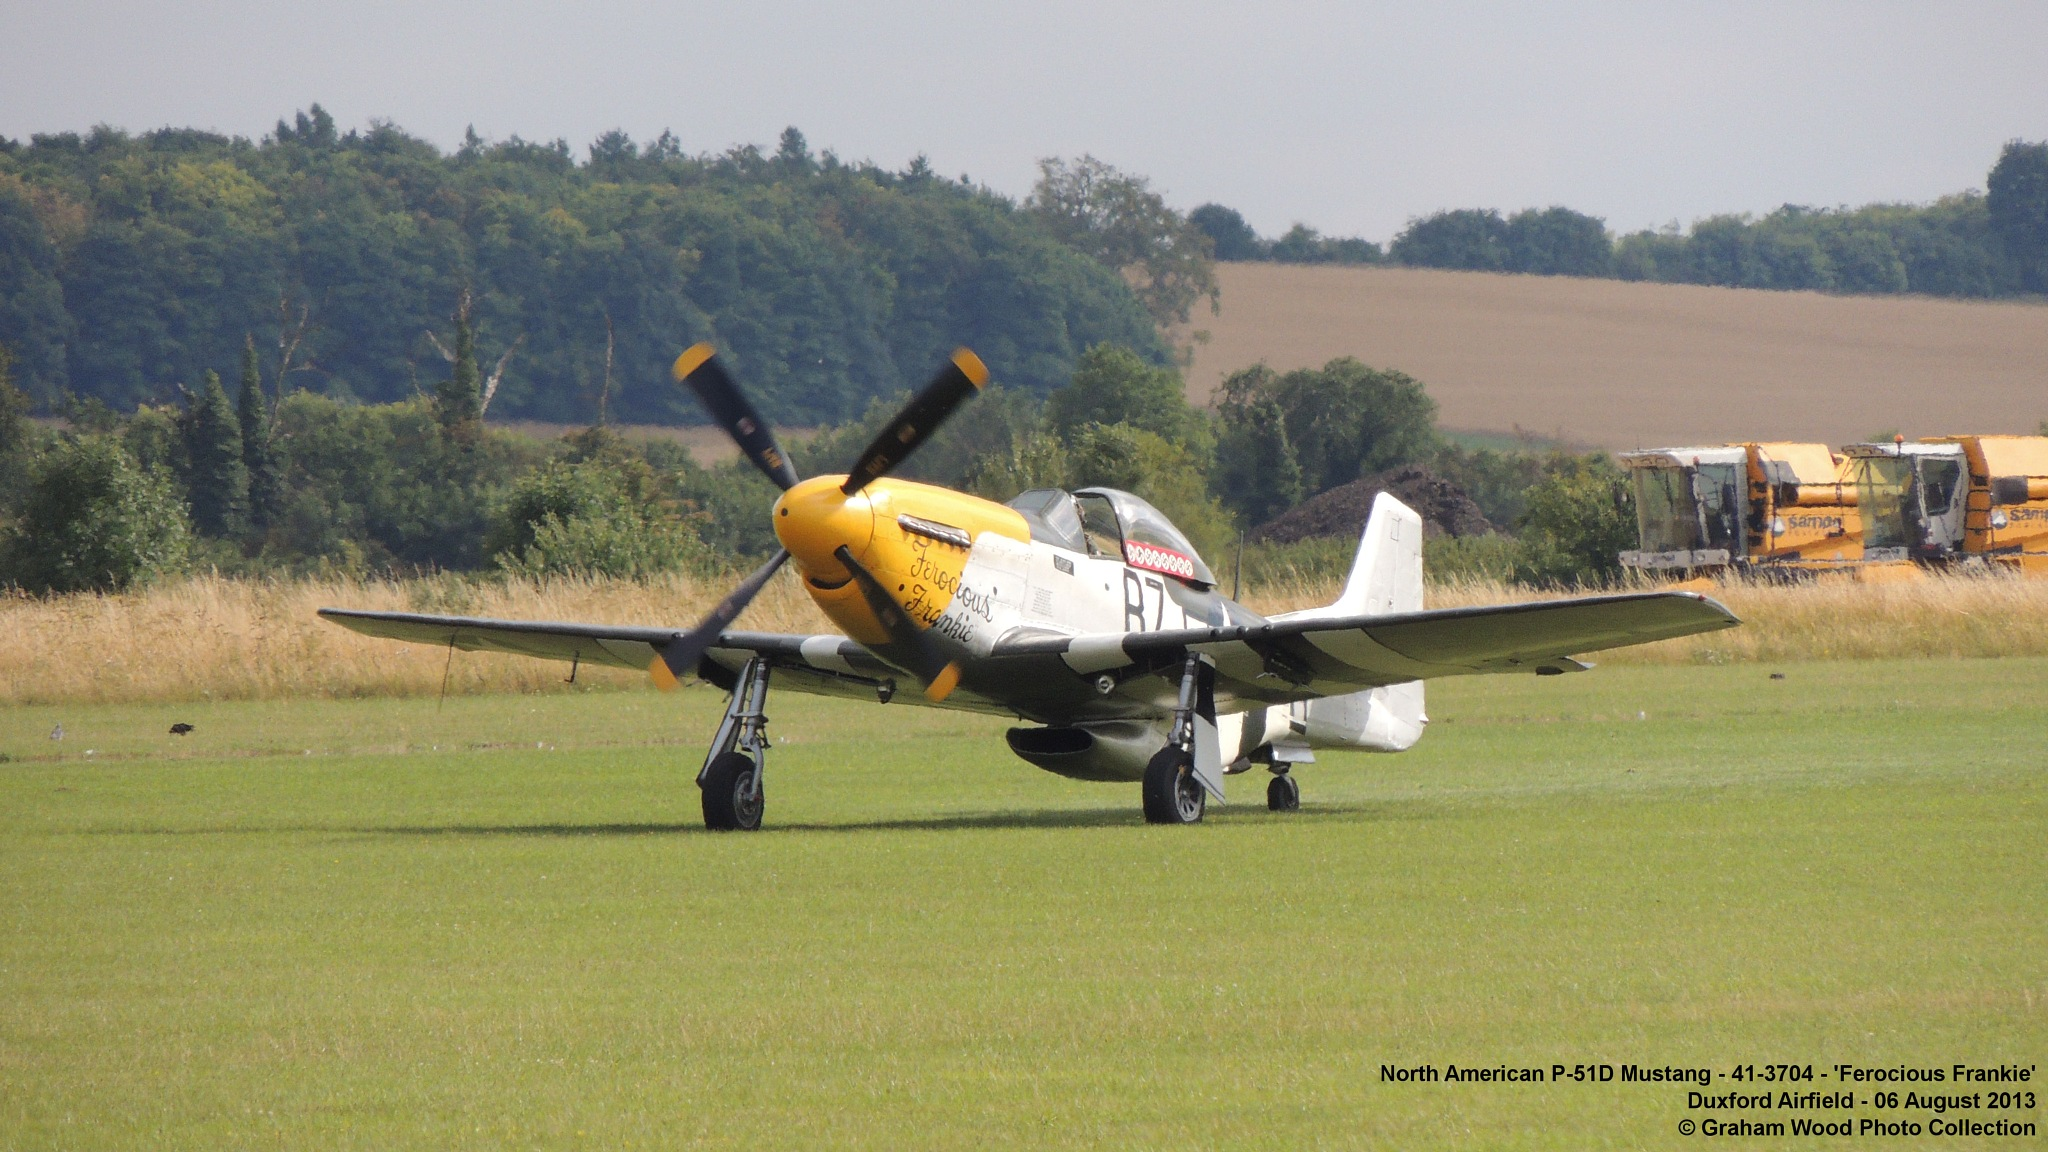 North American P-51D Mustang - 41-3704 - 'Ferocious Frankie' by Graham Wood Photo Collection